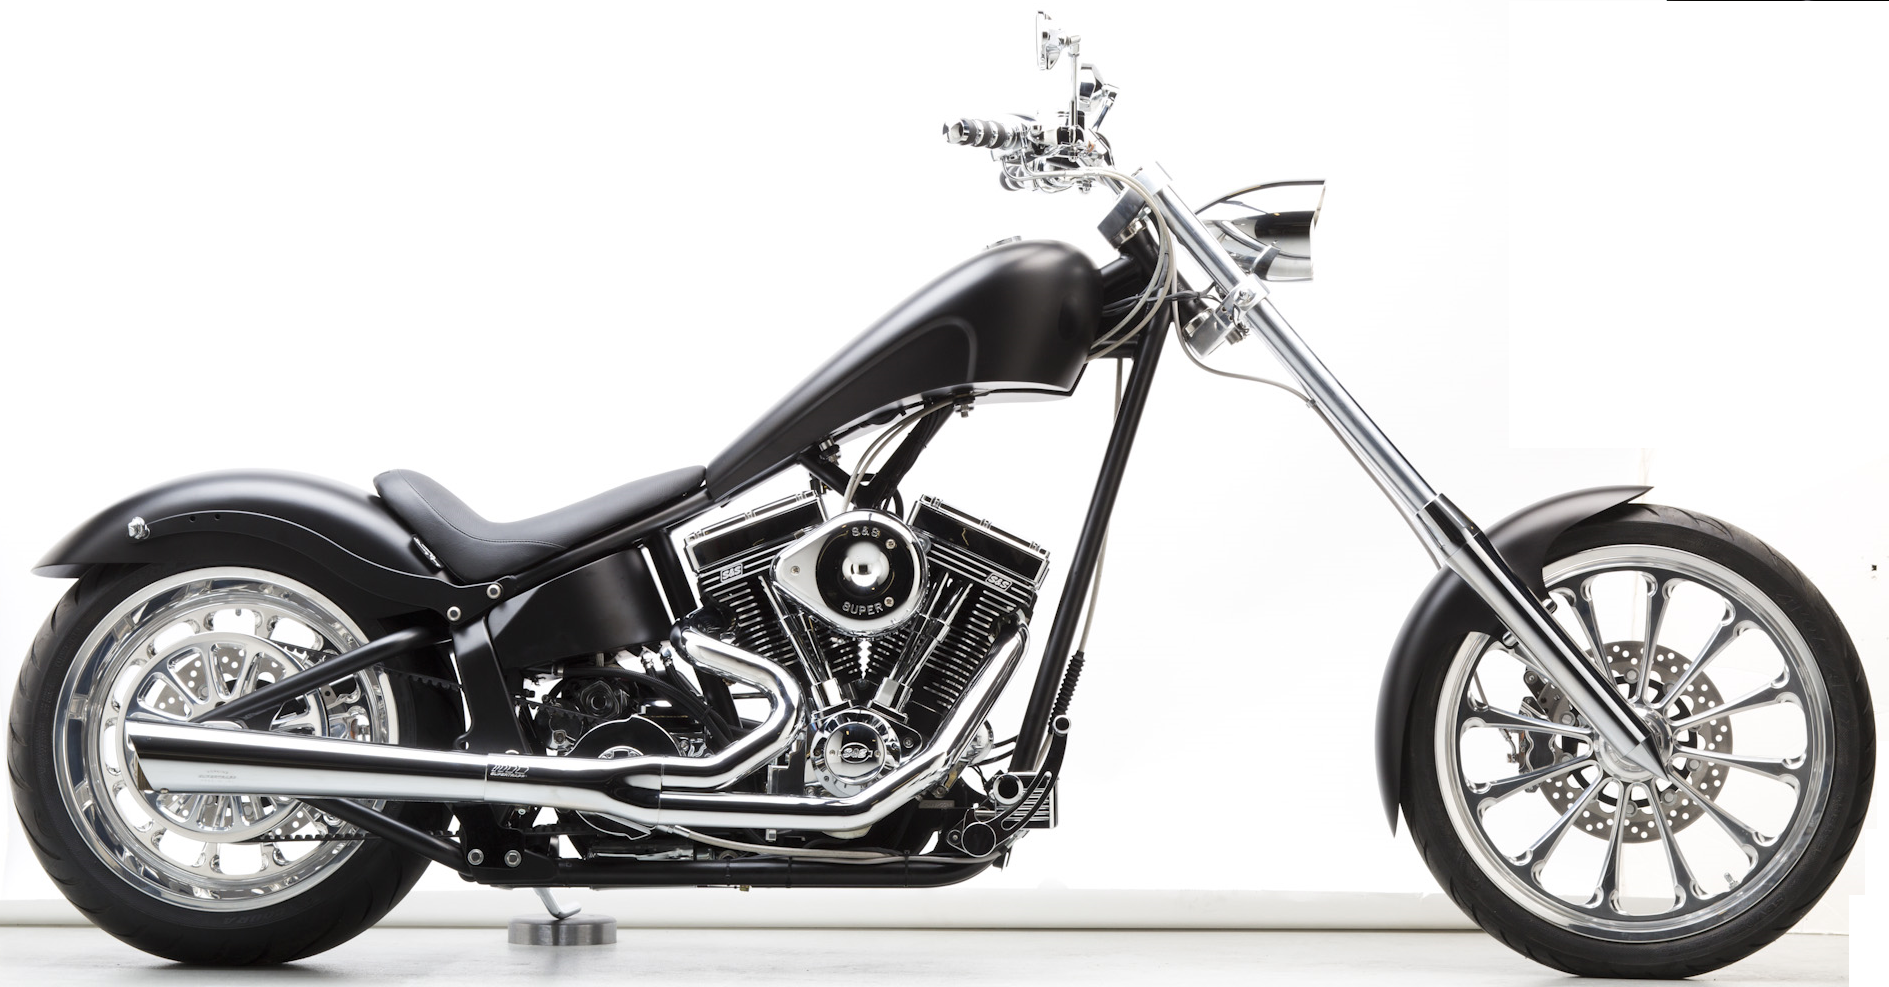 Genial Kansas Motorcycle Works USA Regulator   Flat Black Chopper.  Http://kansasmotorcycleworks